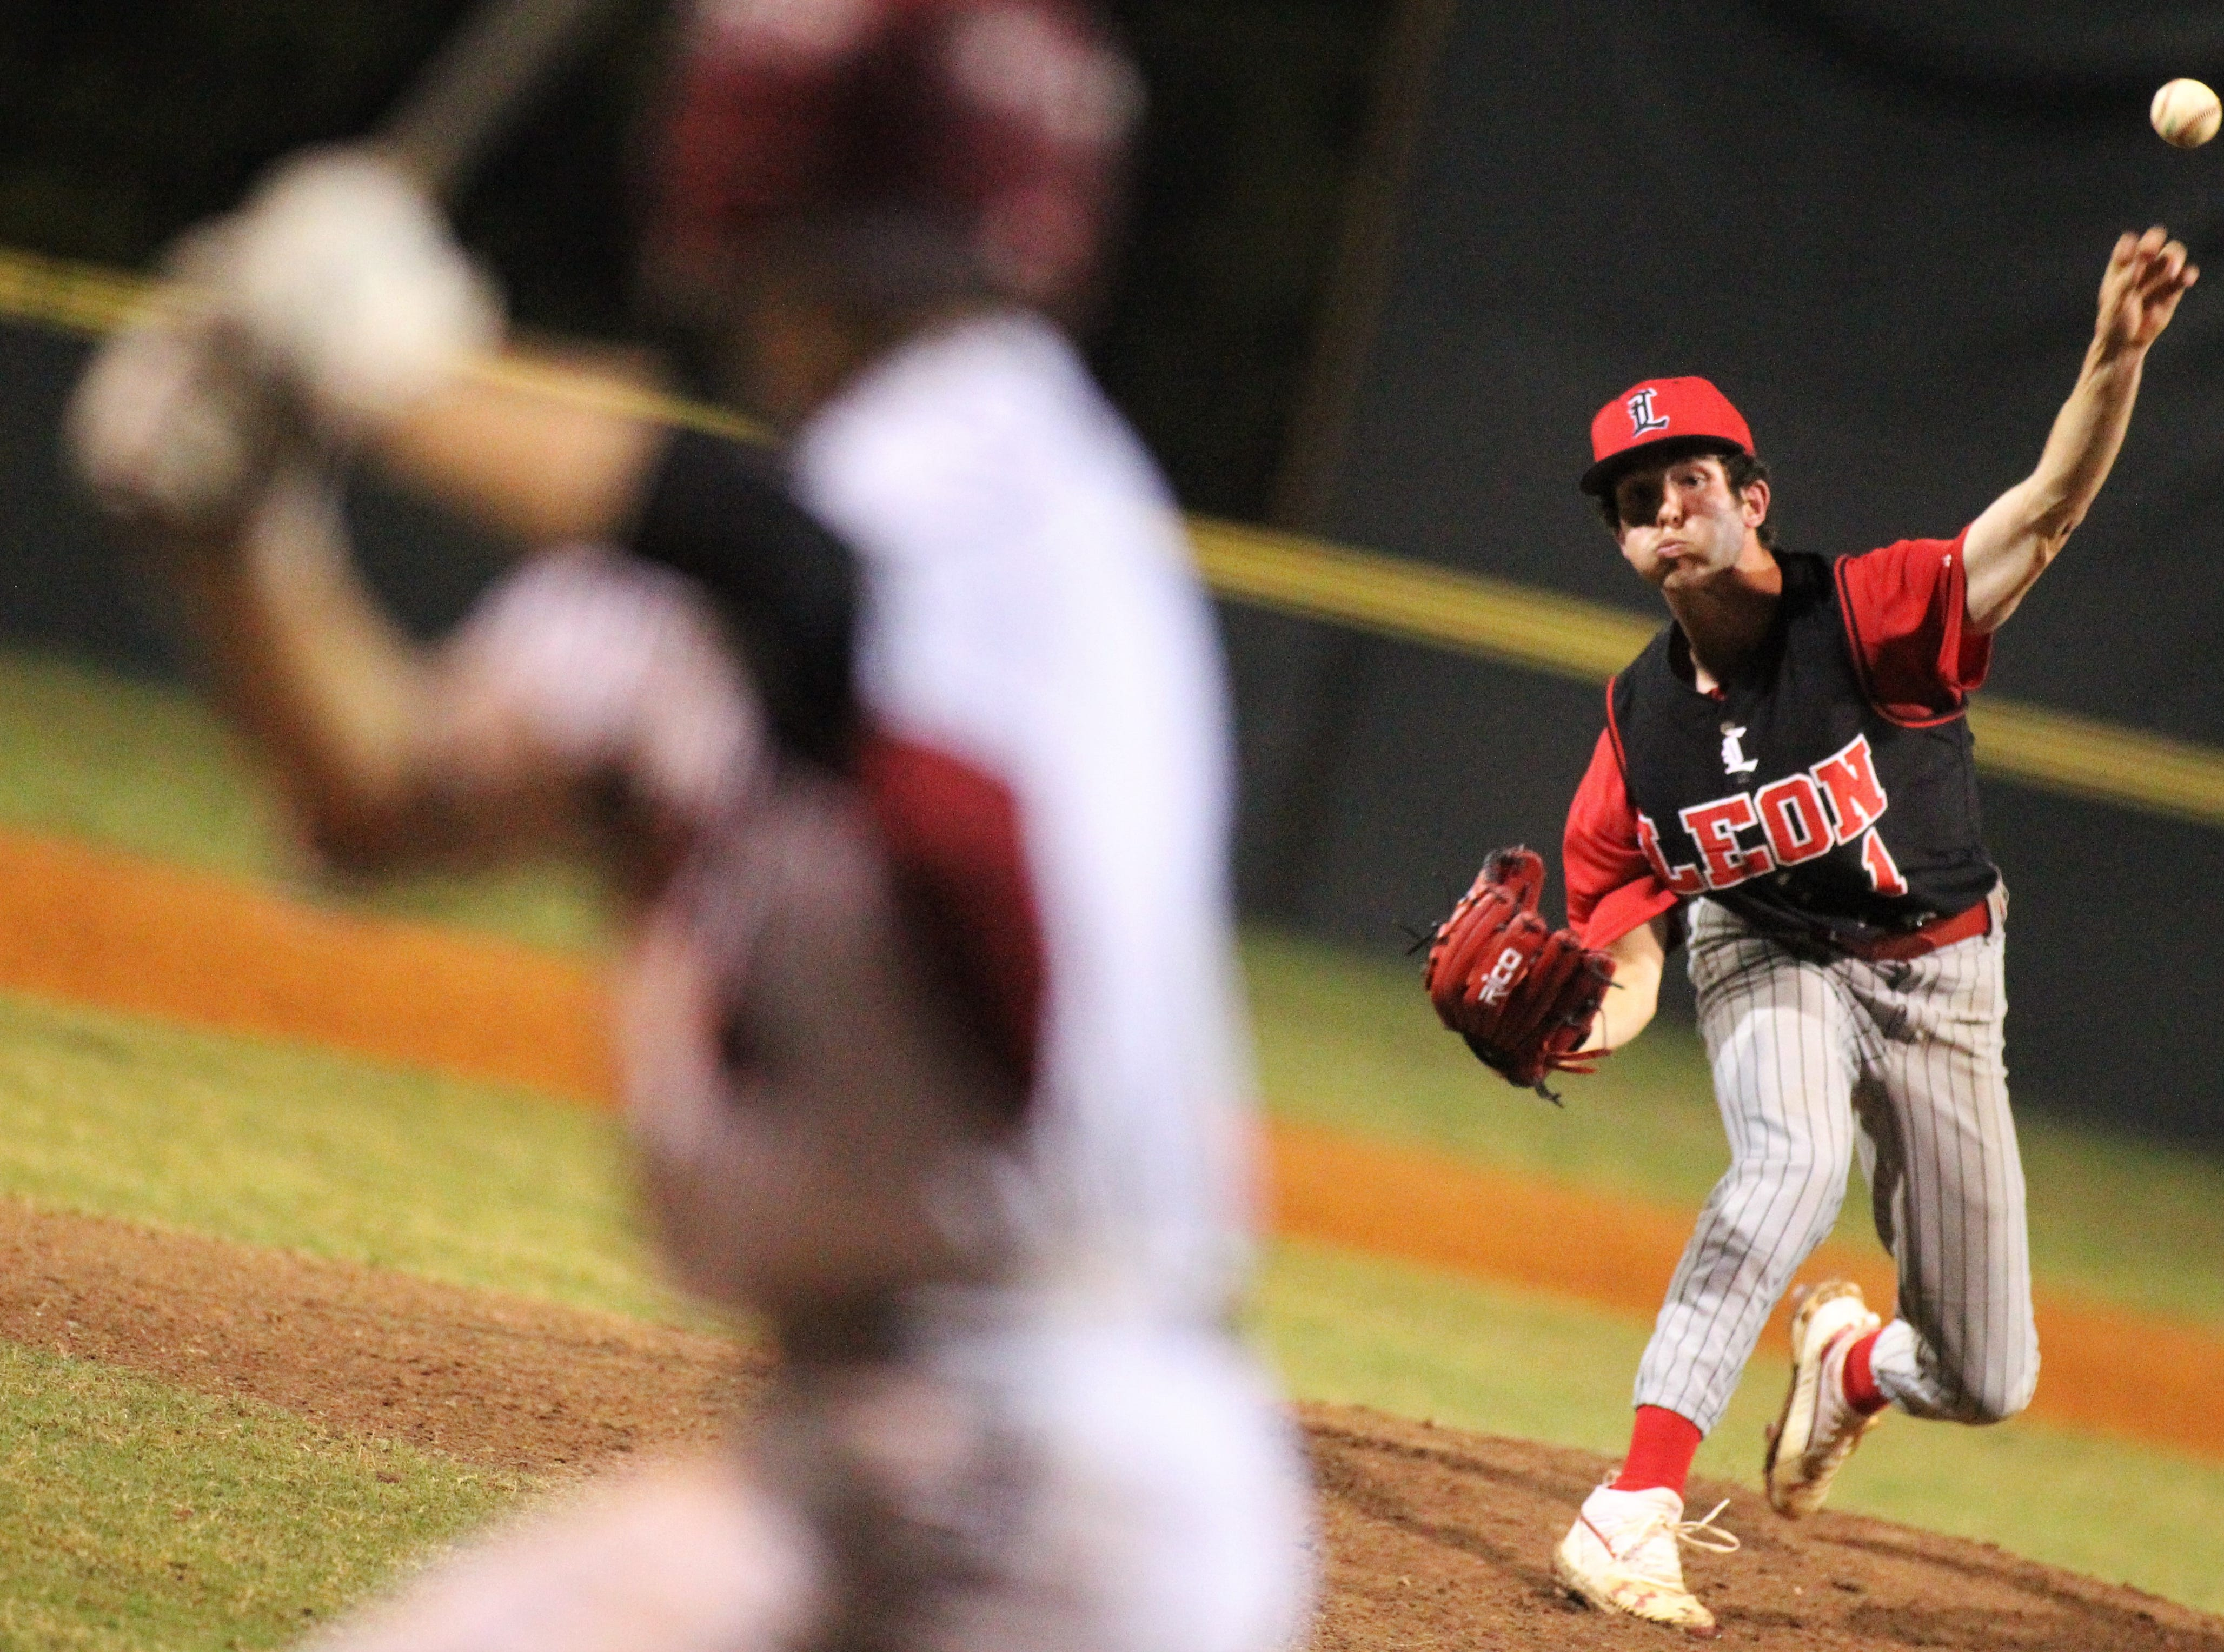 Leon junior Garrett Green pitches in relief as Chiles won an 11-6 home game against Leon on Friday, April 5, 2019, to force a season split. The Lions won 3-0 earlier in the week.